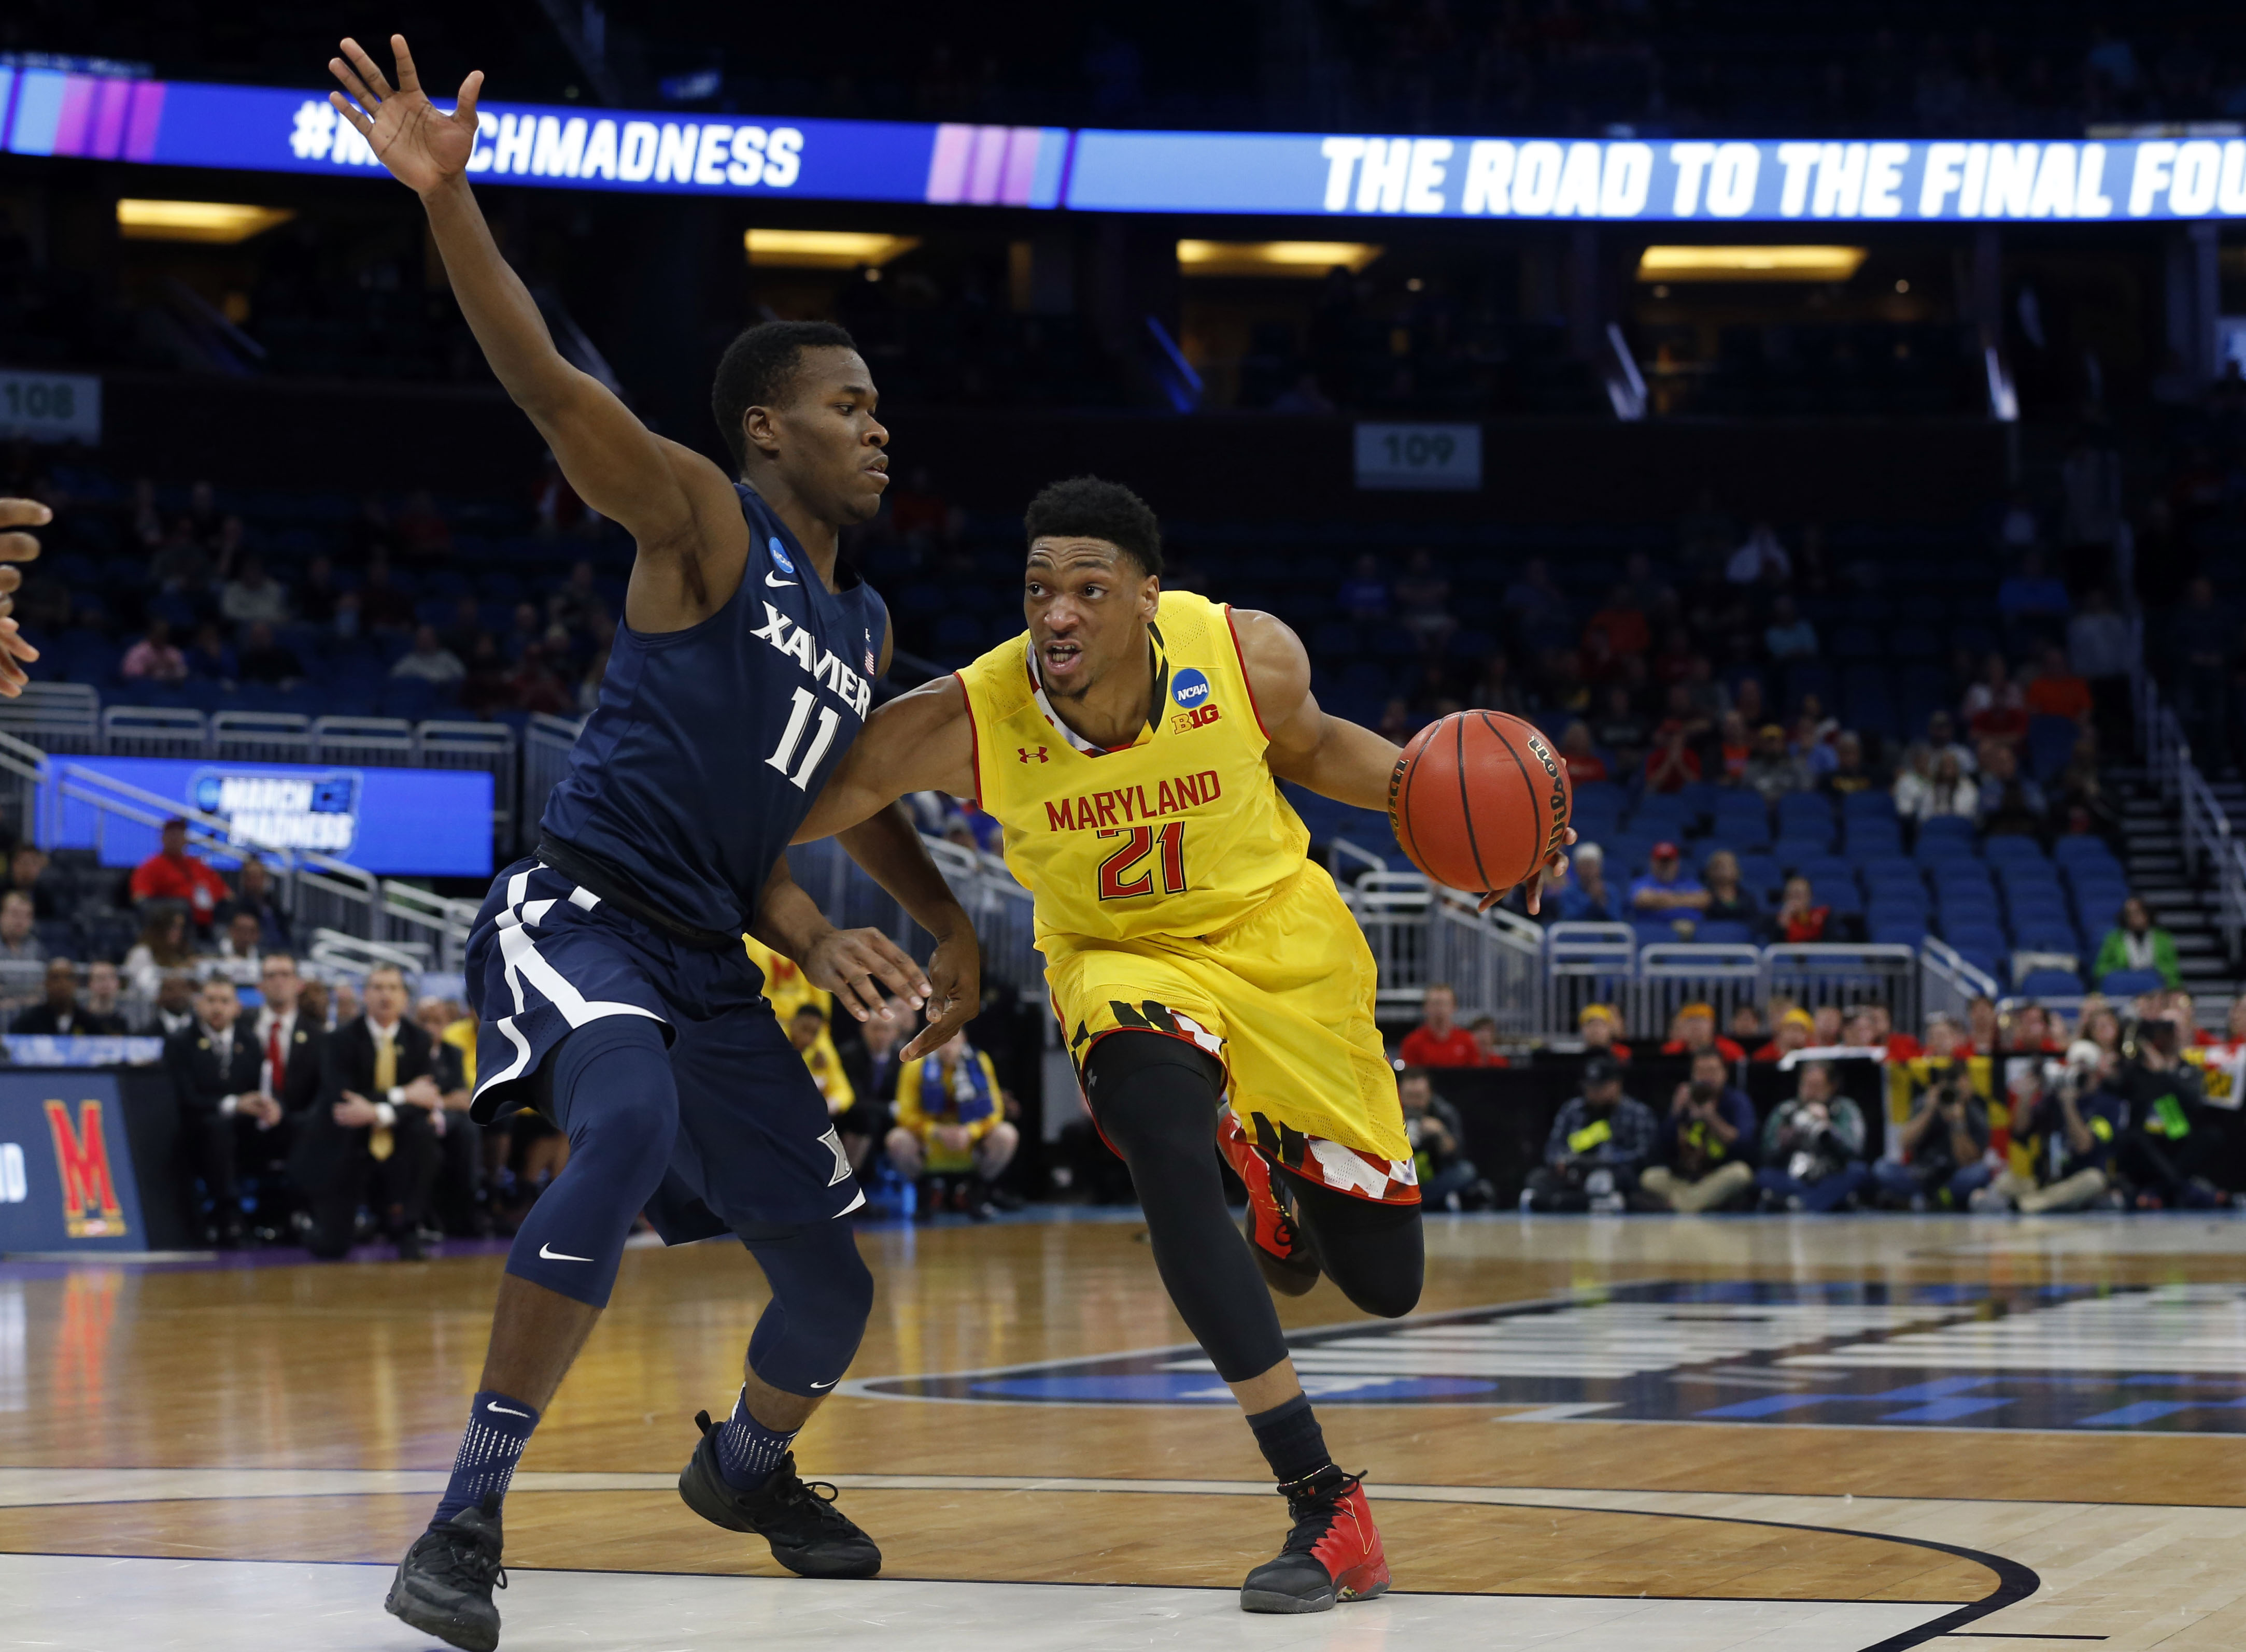 9947849-ncaa-basketball-ncaa-tournament-first-round-maryland-vs-xavier